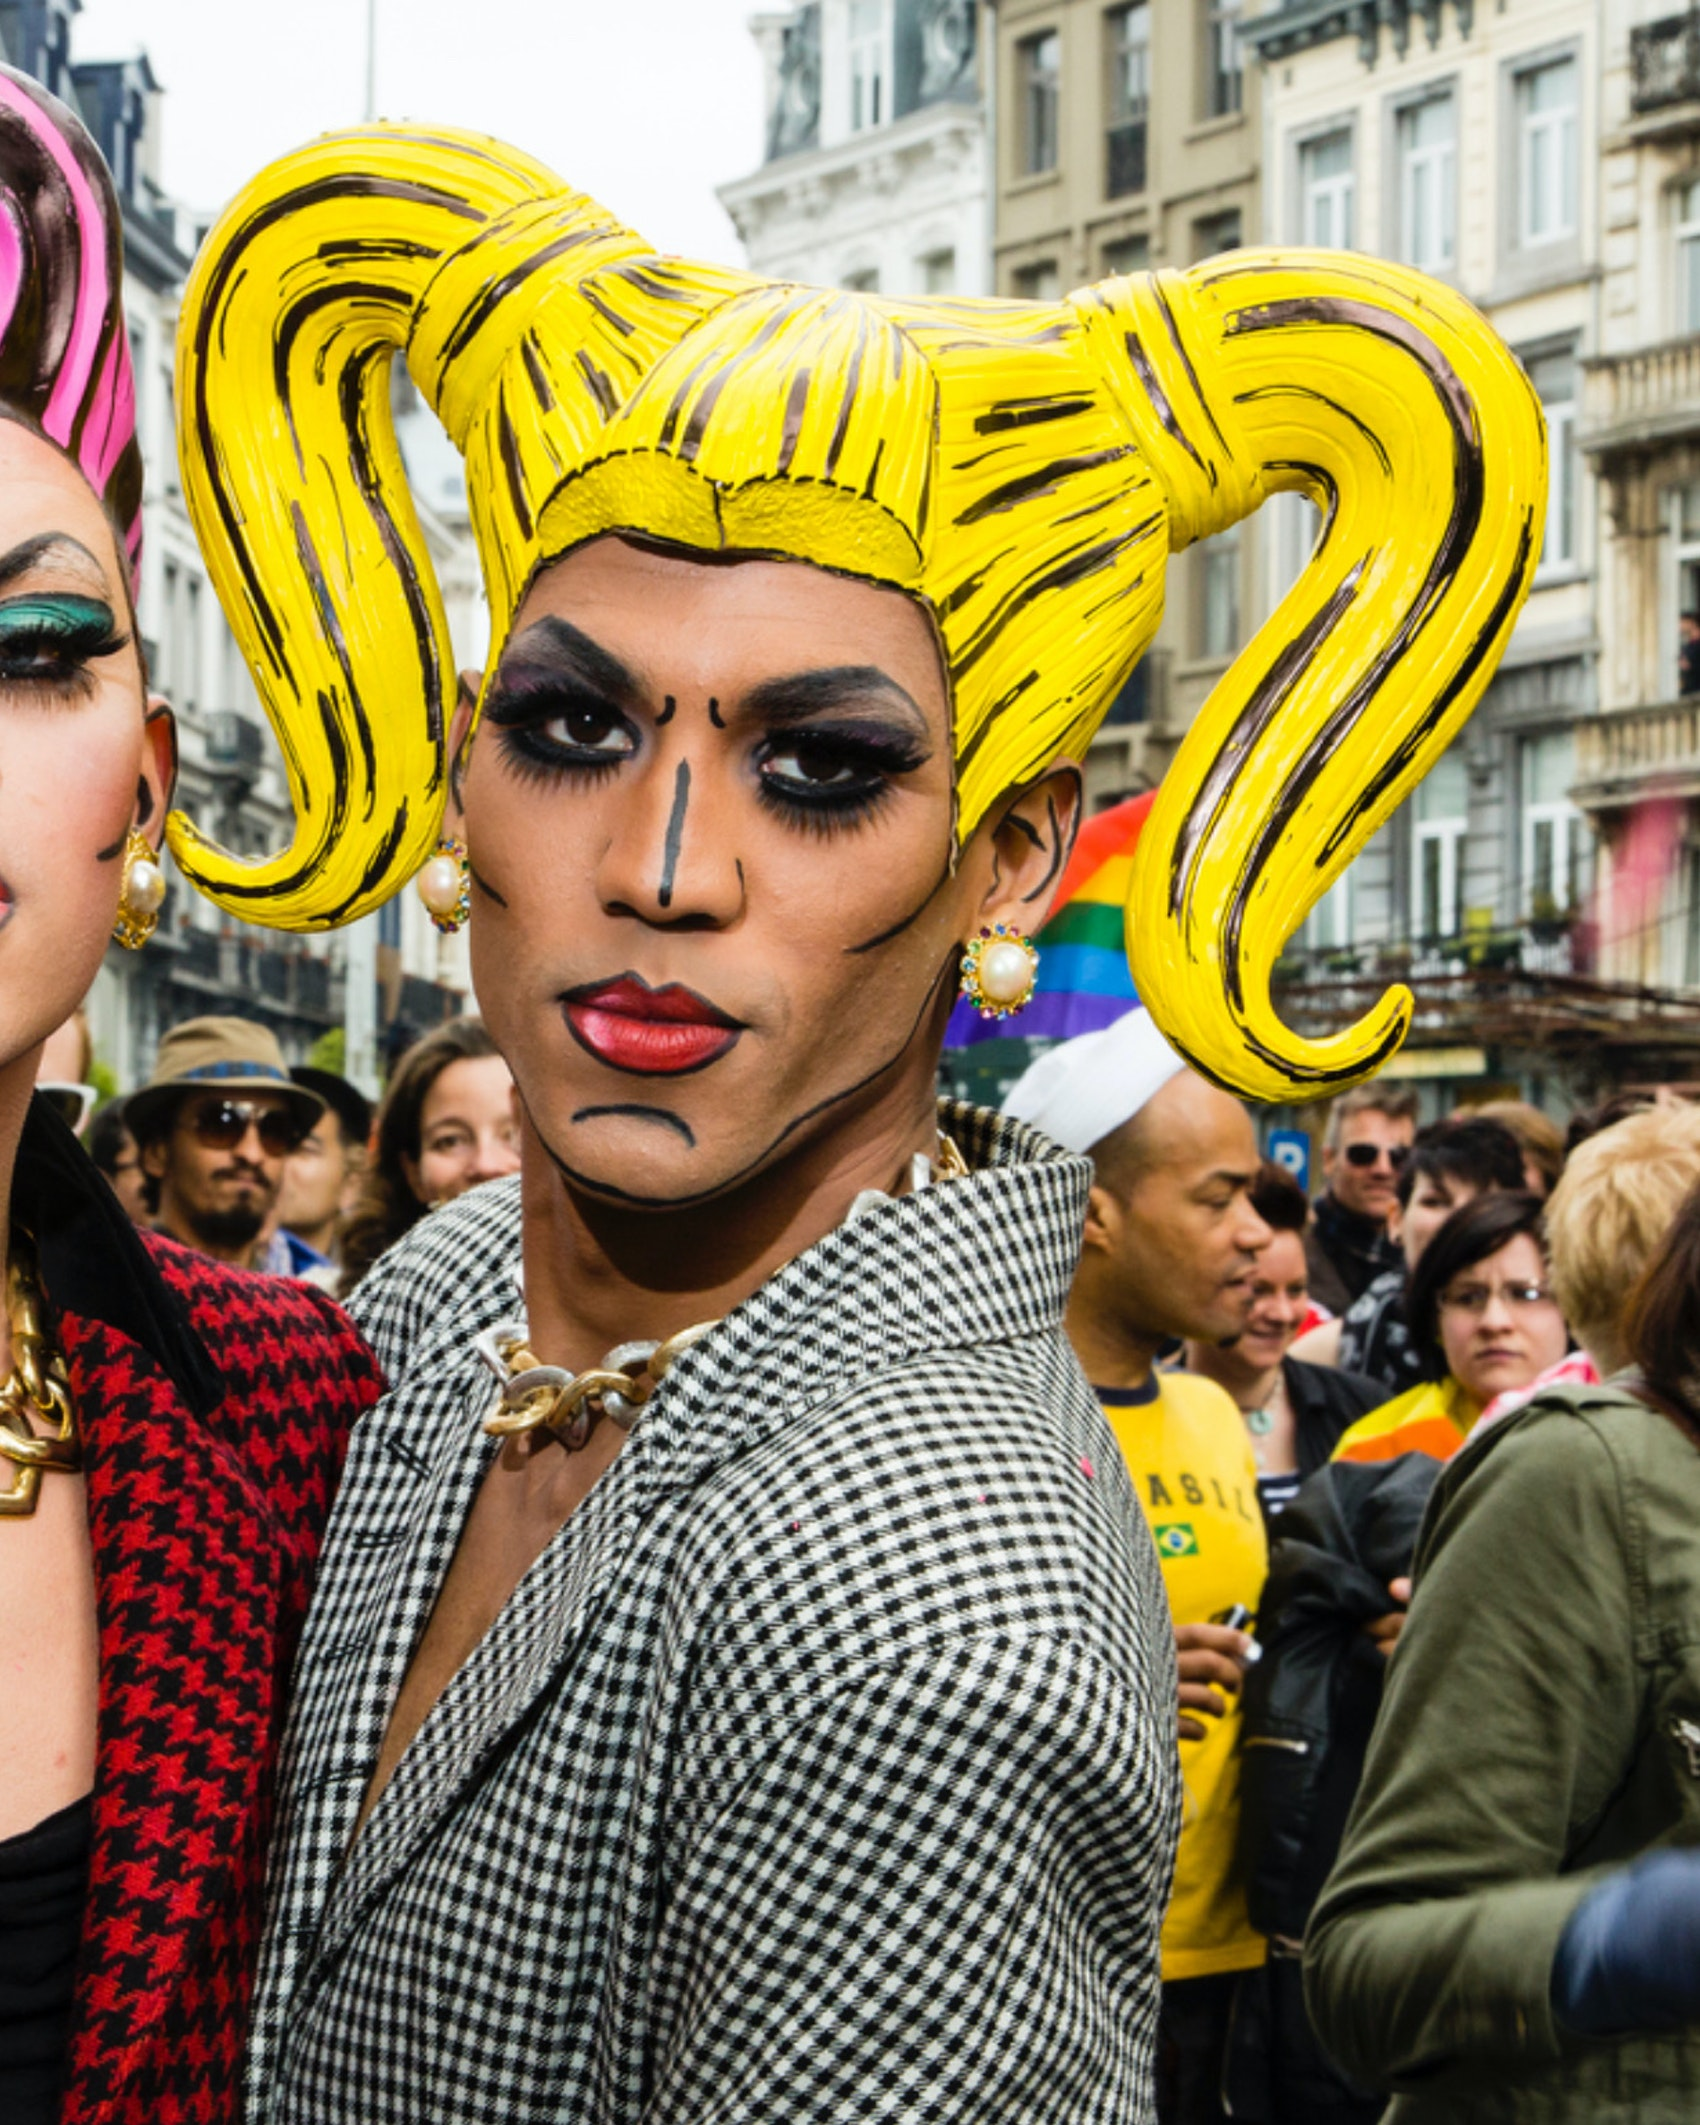 Two dressed up gay men pose in the streets of Brussels. About 80,000 participants at the Belgian Pride Parade to celebrate the LGBT (Lesbian, gay, bisexual, transgender) community and demand equal rights.